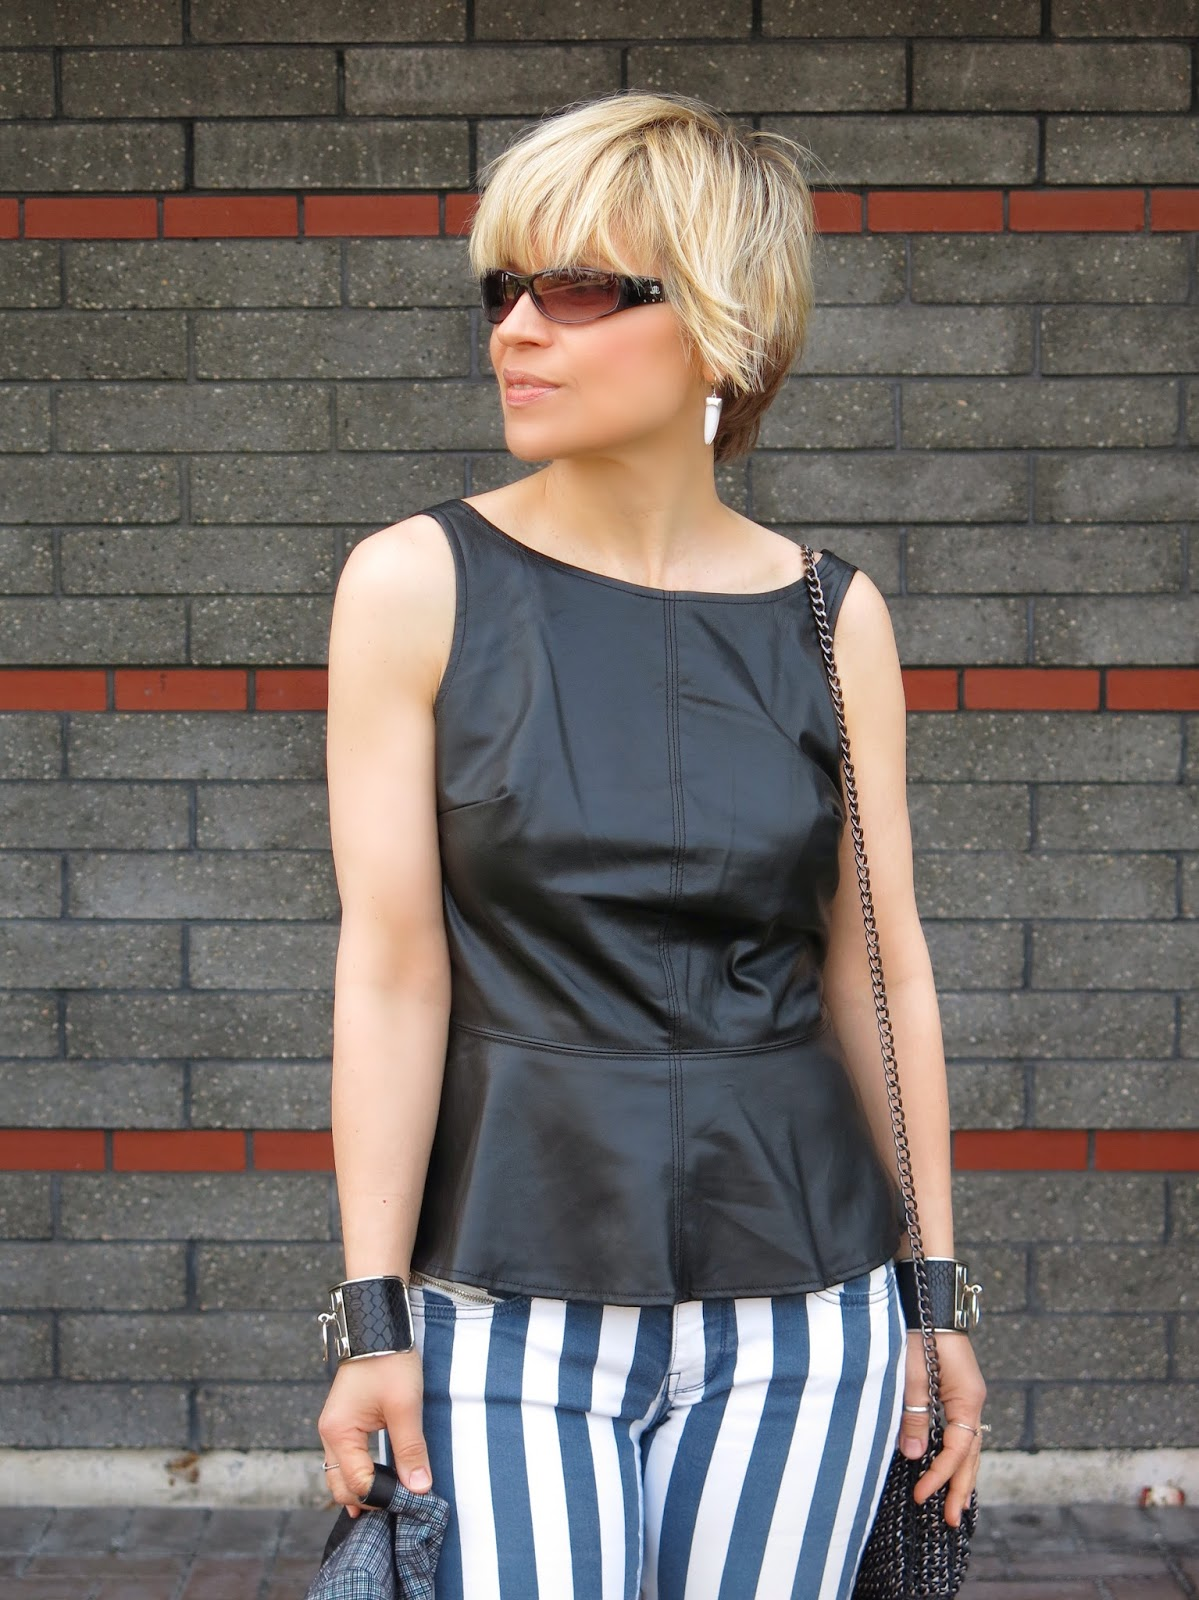 faux-leather peplum top and accessories